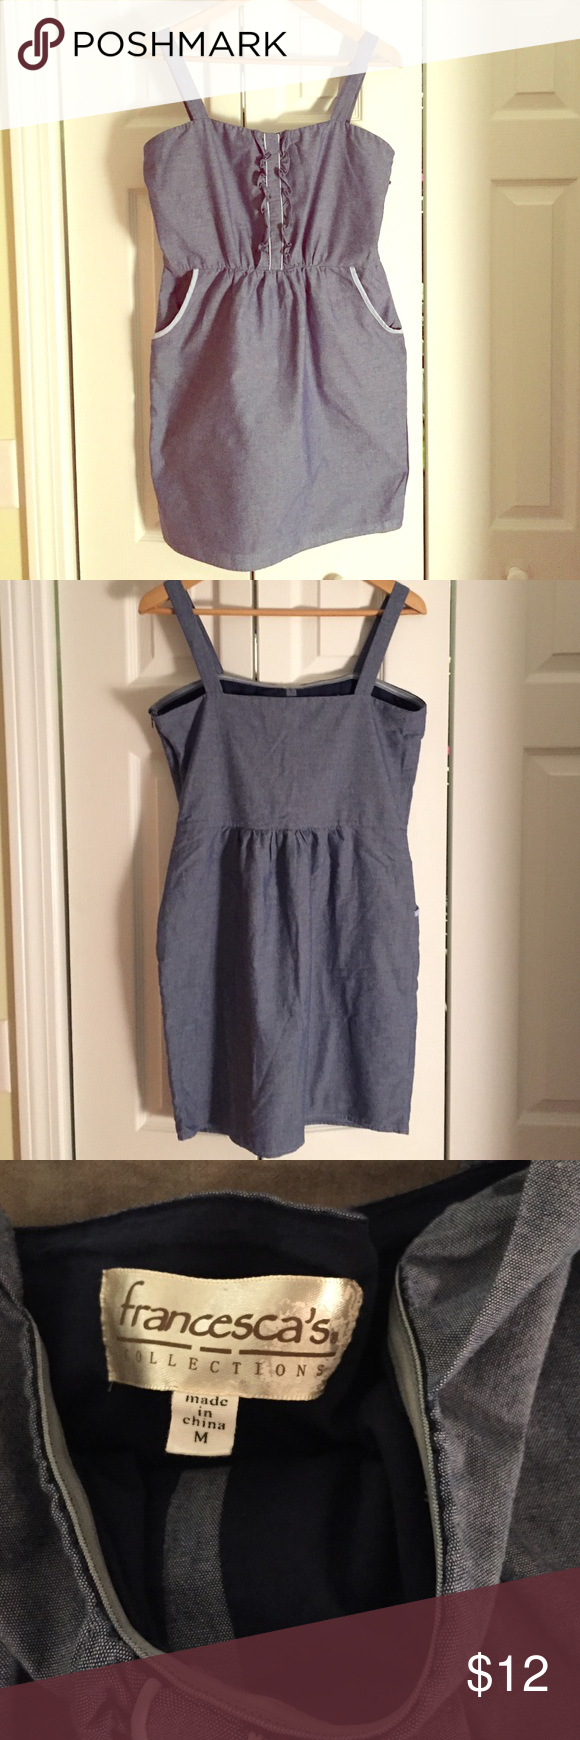 Cute summer dress Cotton denim look dress with cute pockets. Side zip. Great condition. Size medium in juniors. Measures 32 inches from straps to hem. 16 inches from armpit to armpit. Francesca's Collections Dresses Mini